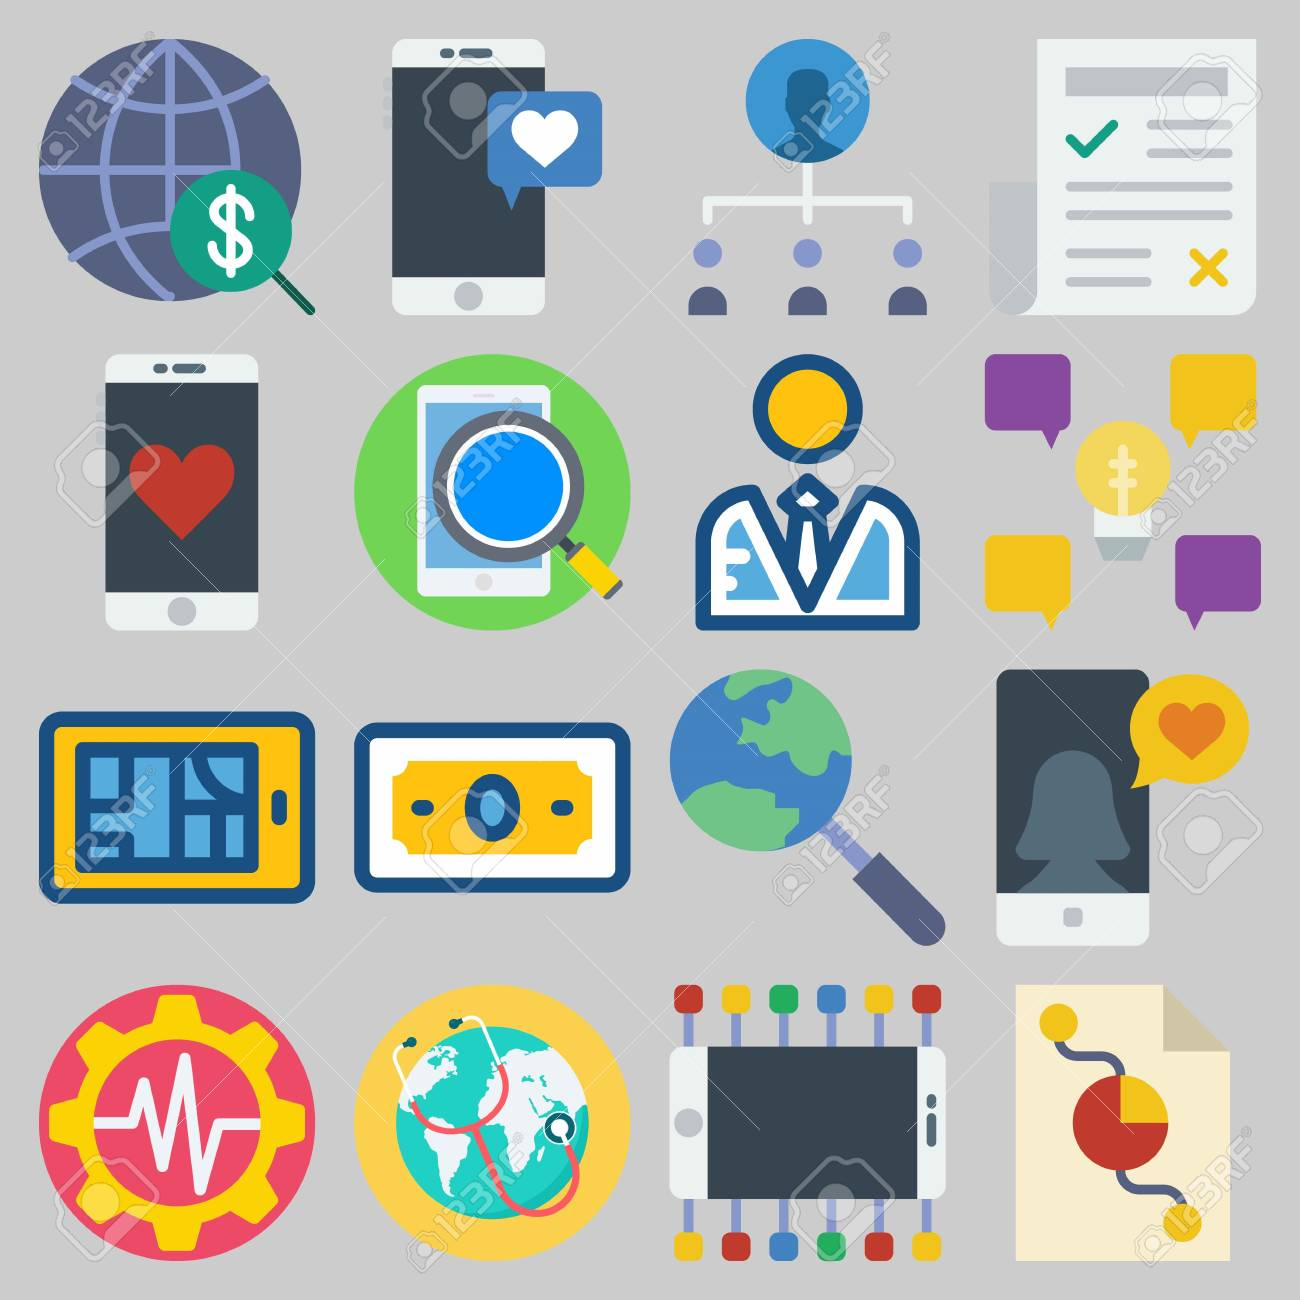 Icon Set About Marketing With Keywords Search Teamwork Settings